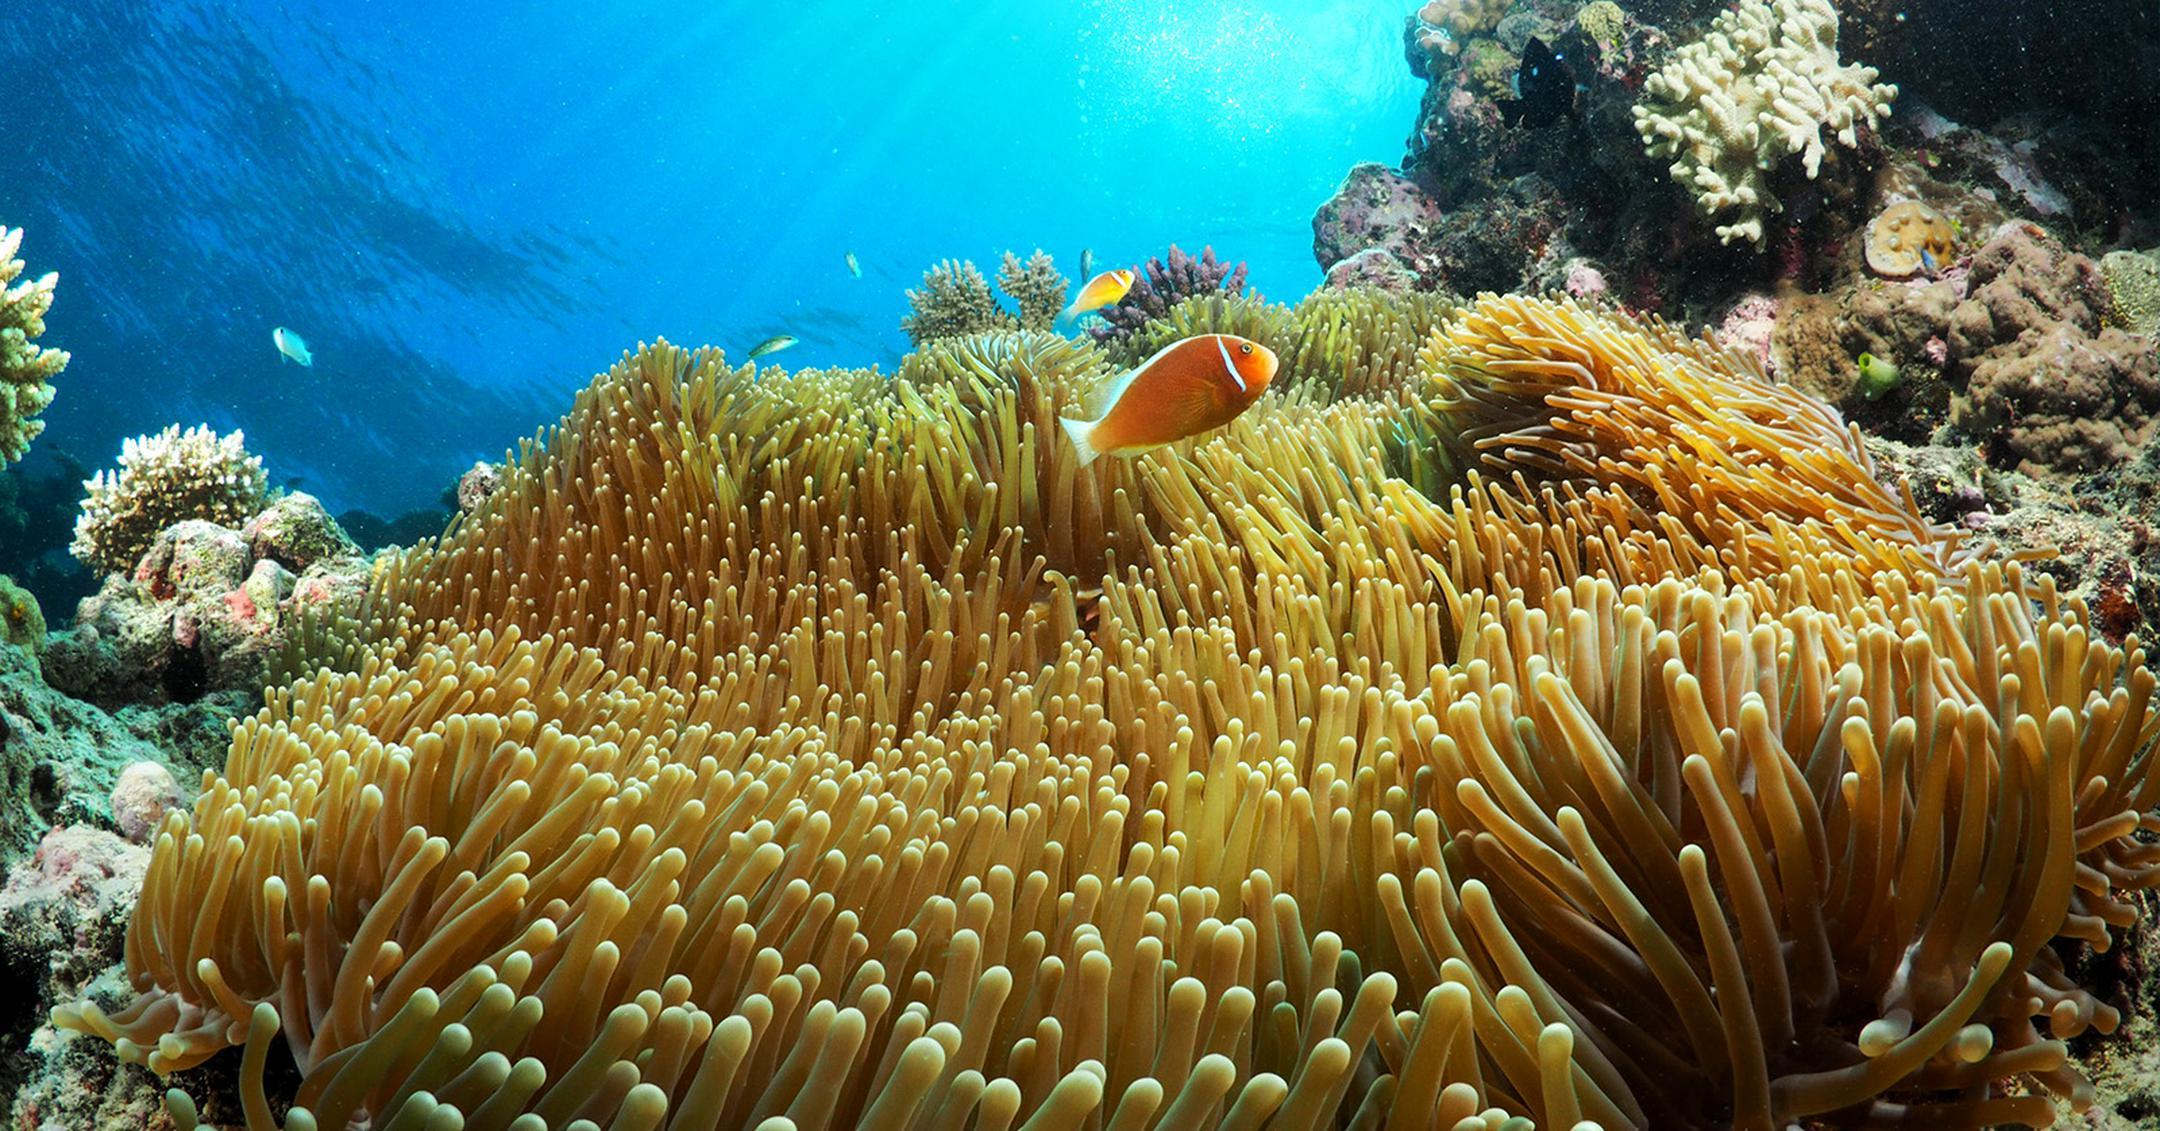 GreatBarrierReef4-1536270820020-1536270822422-1536871270873-1536871273169.jpg